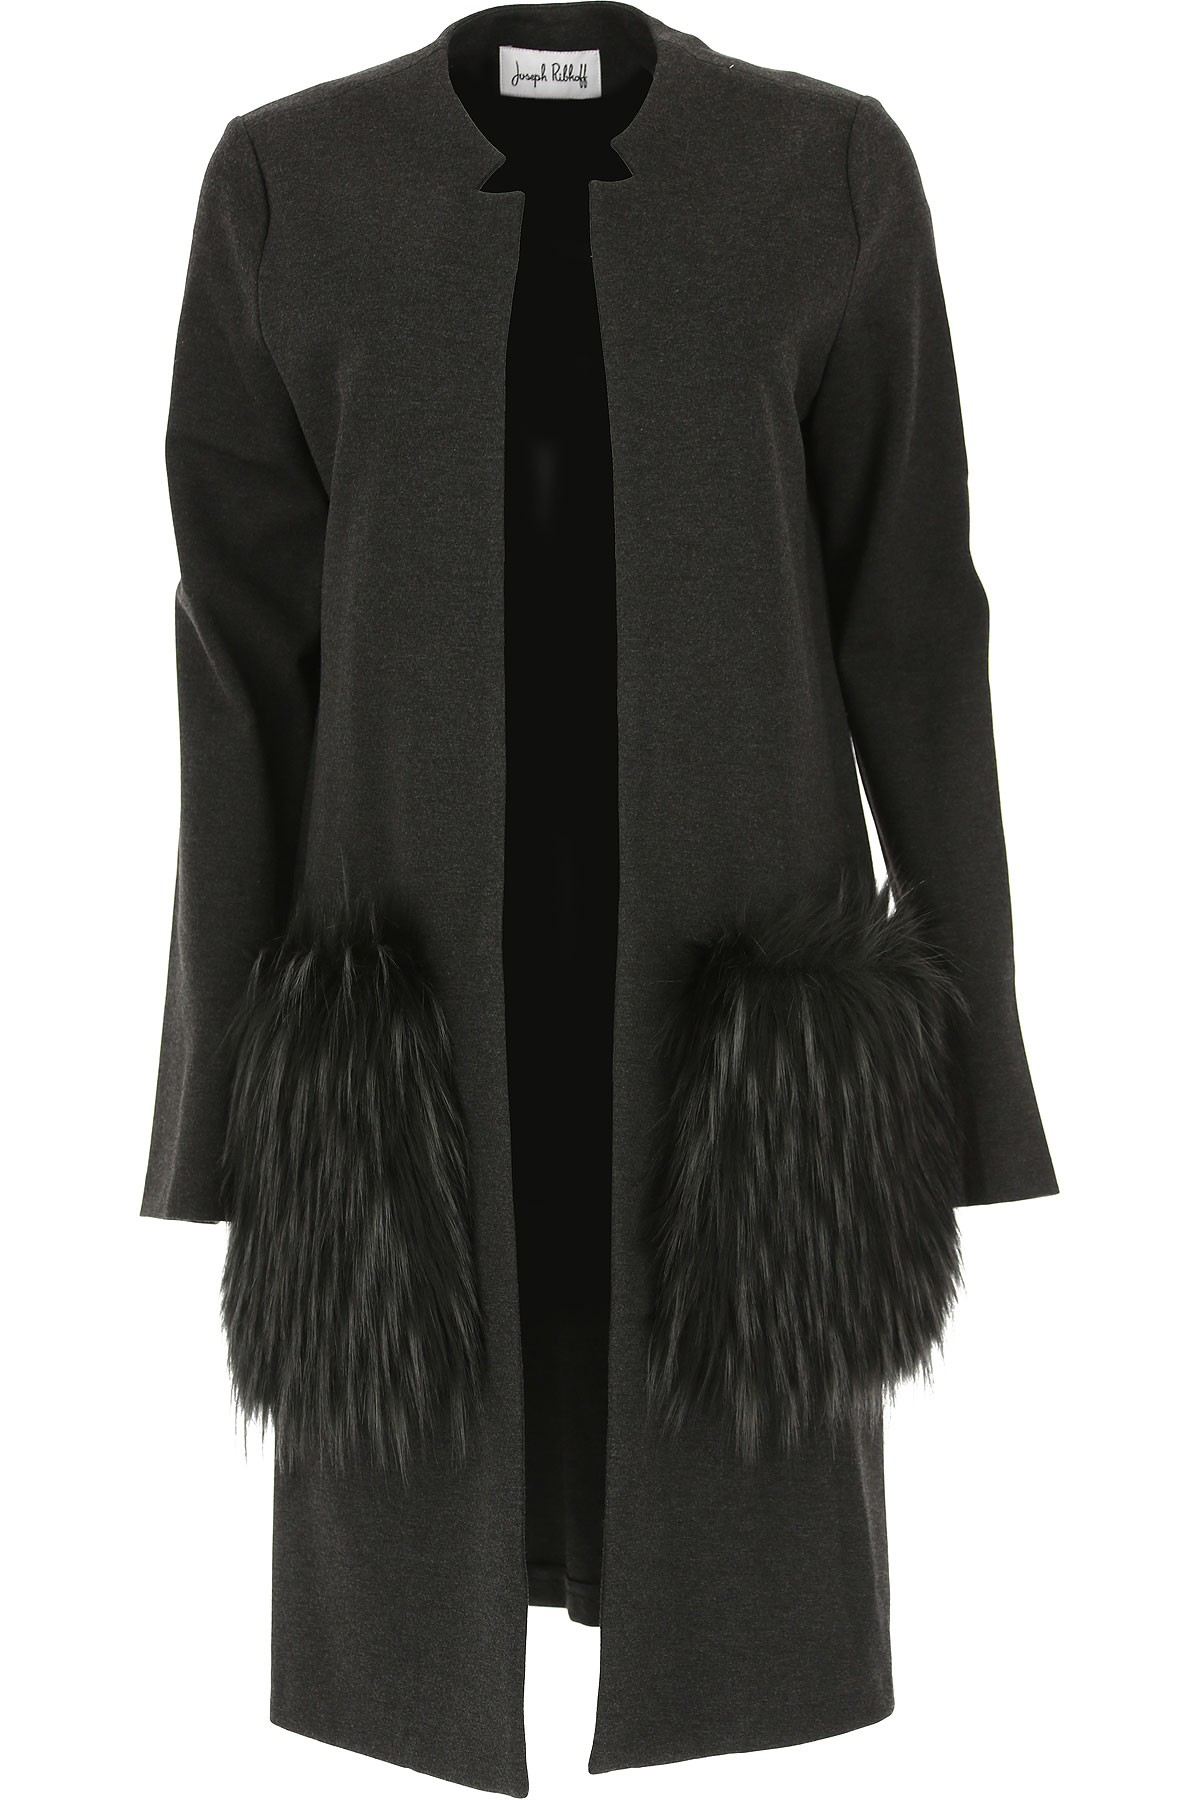 Image of Joseph Ribkoff Dress for Women, Evening Cocktail Party, Charcoal Grey, Viscose, 2017, 10 12 6 8